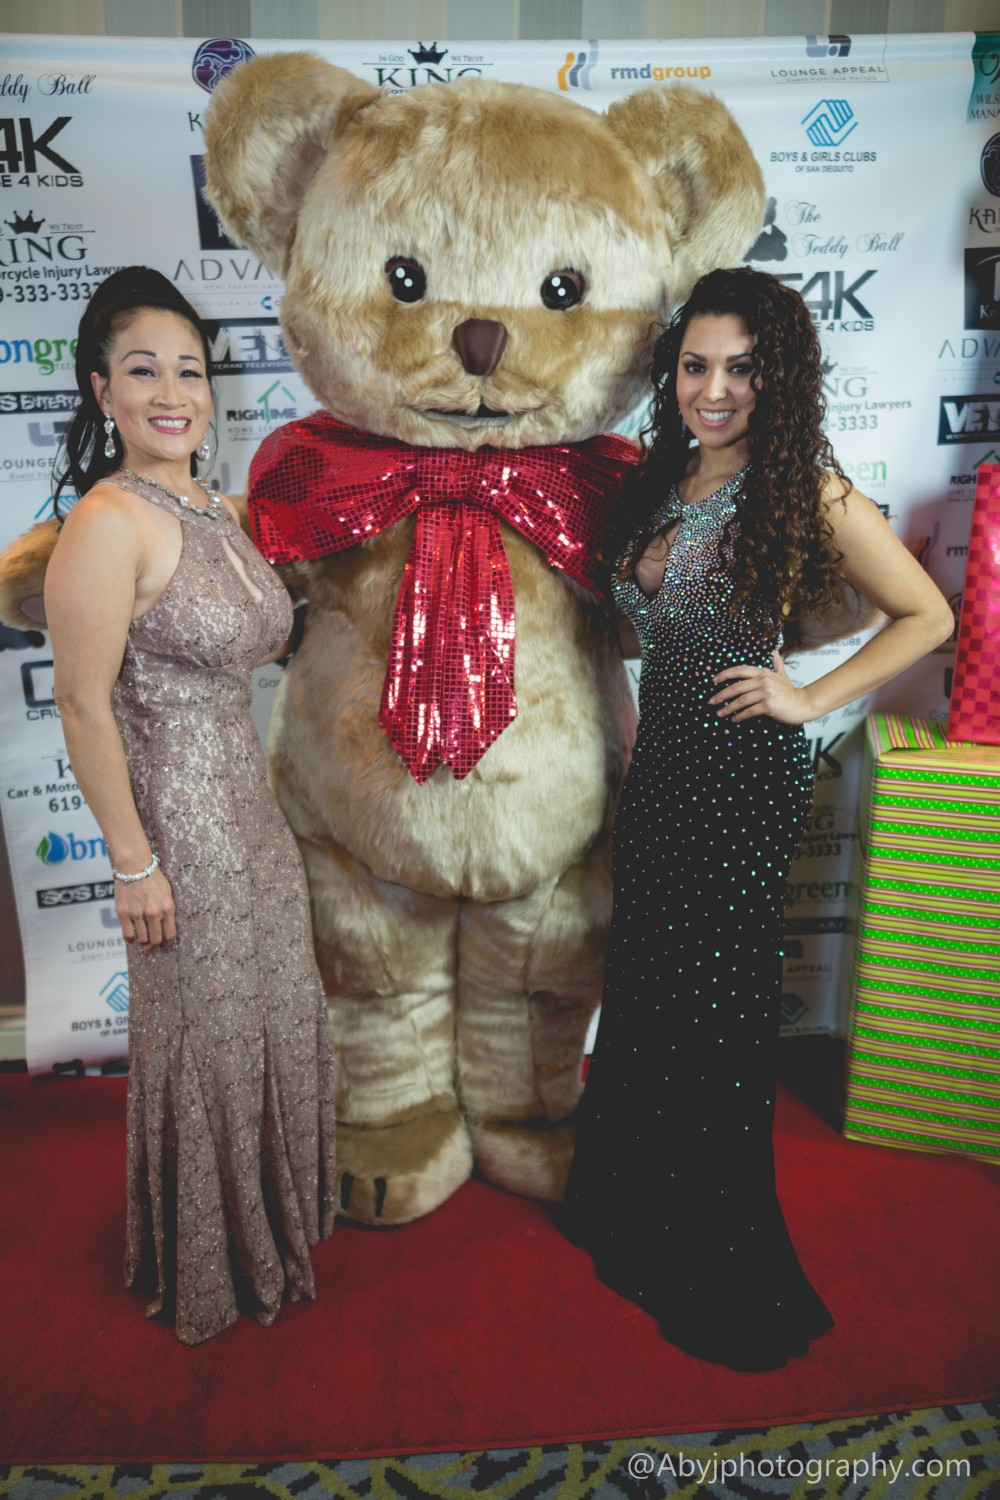 ABYJ_Photography_2016_Teddy_Ball - 161.jpg